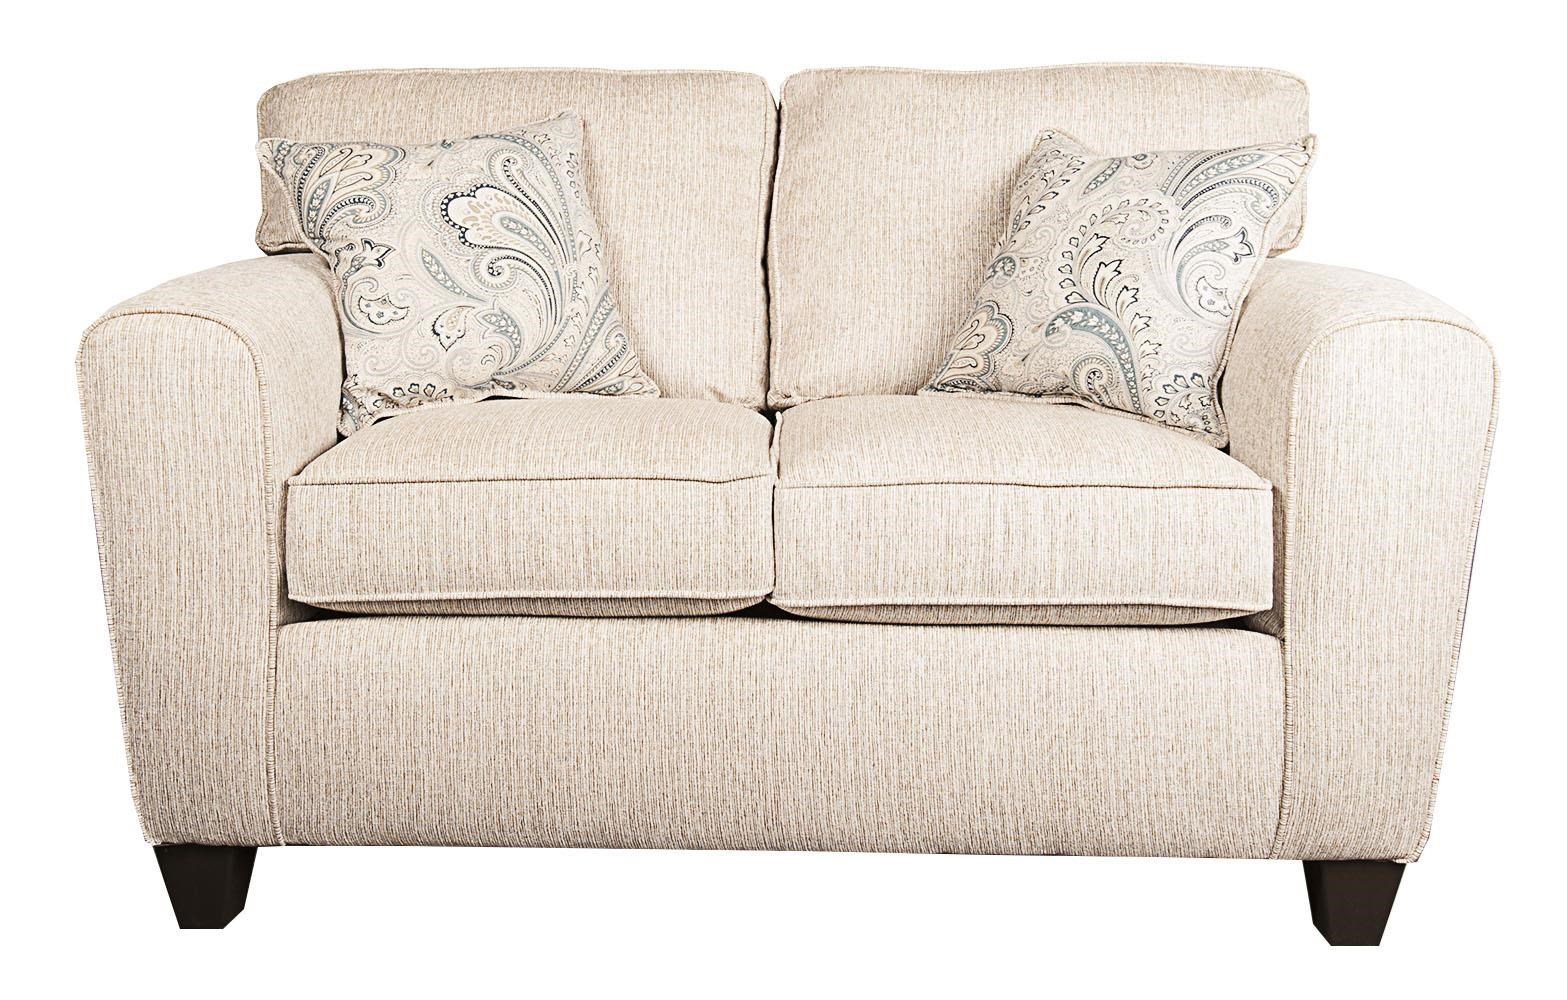 Morris Home Furnishings Rexanna Rexanna Loveseat - Item Number: 554244964